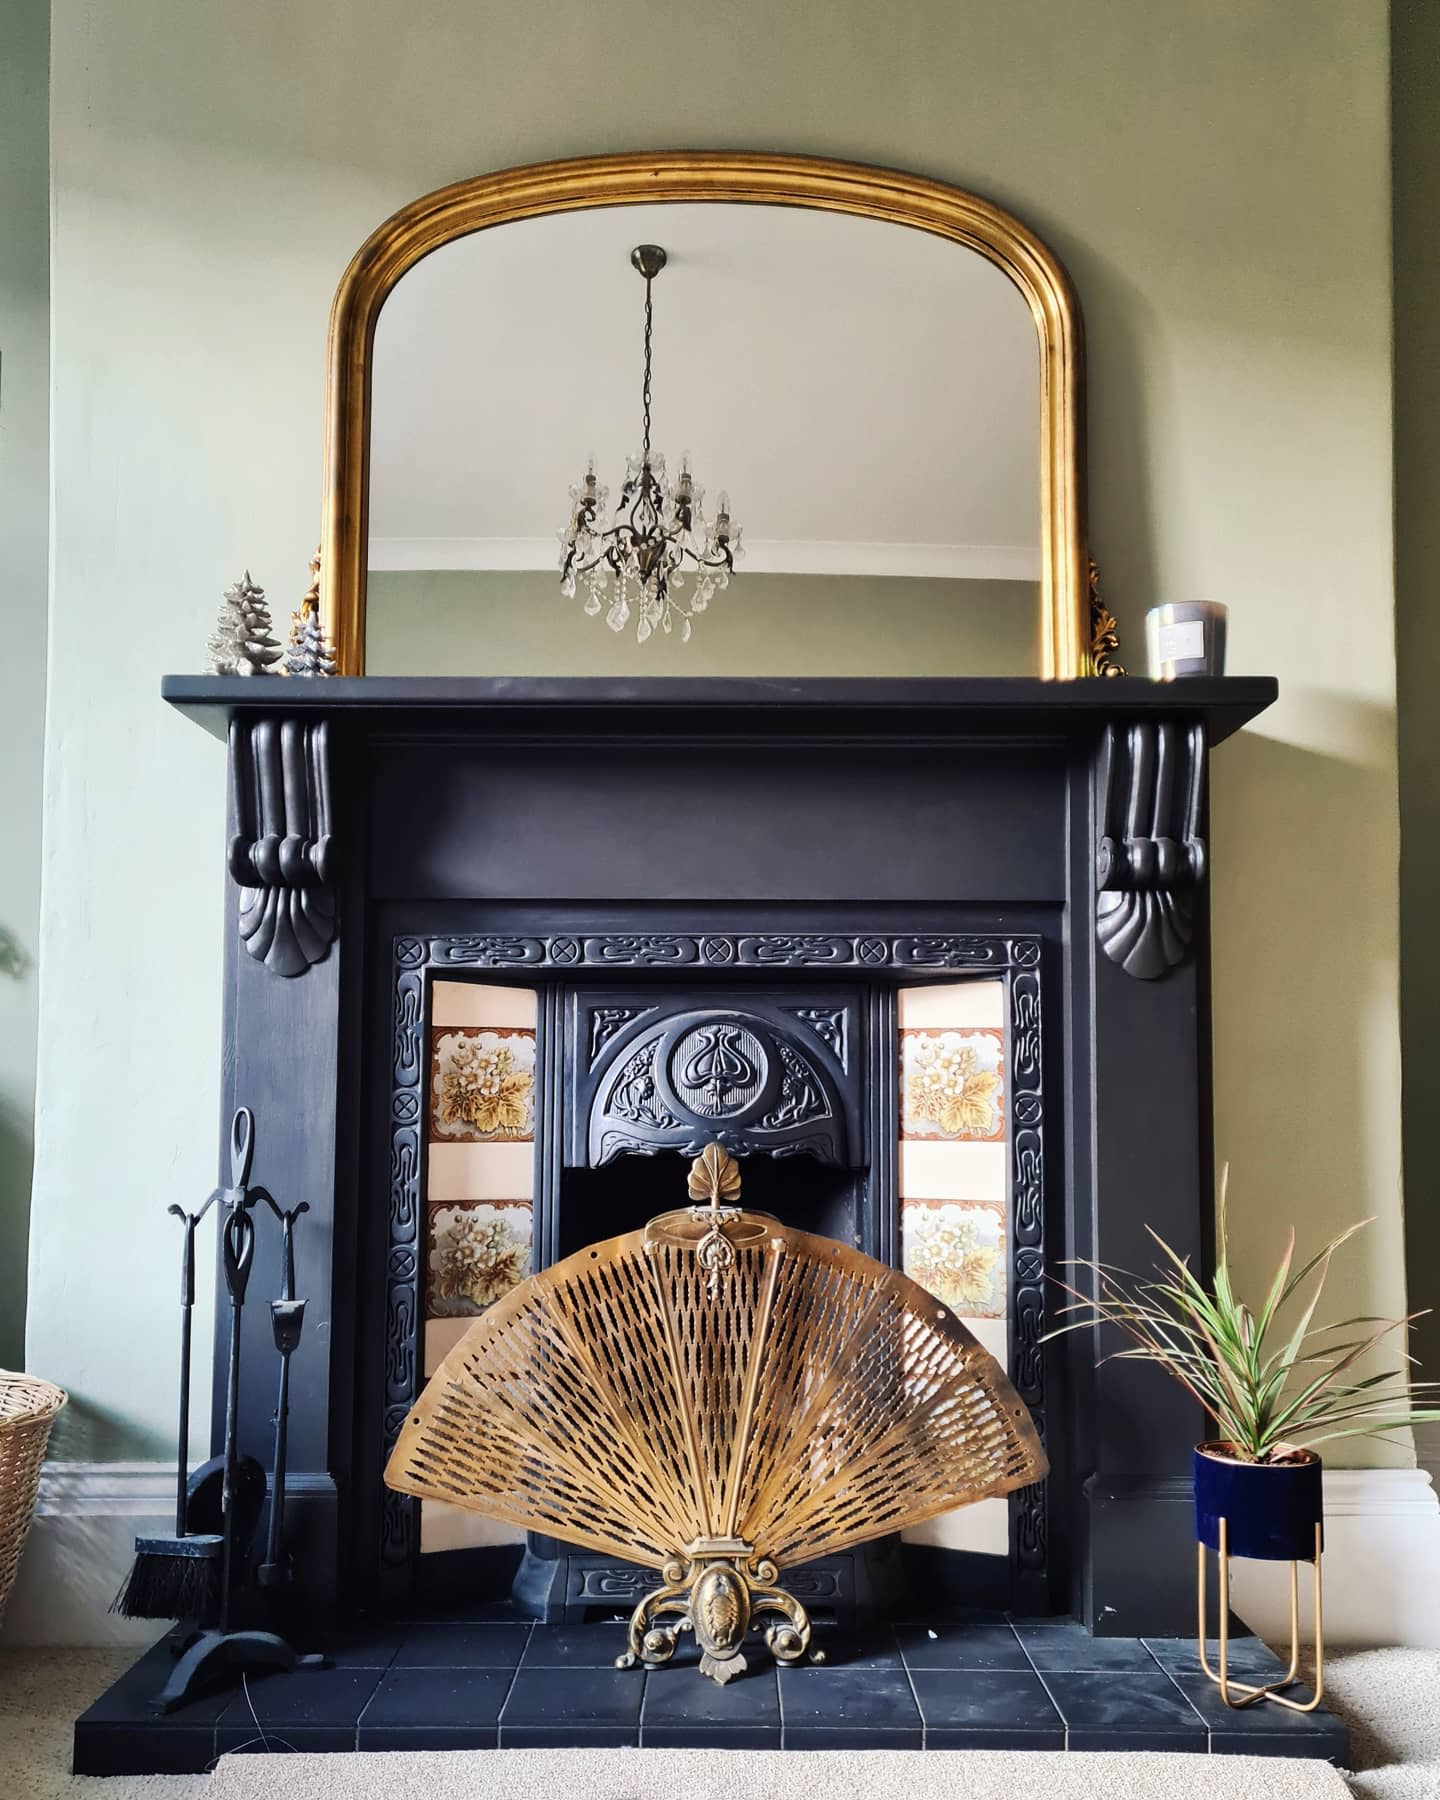 Rustic Fireplace Surround Ideas -thelittlewhitehouseonthecorner